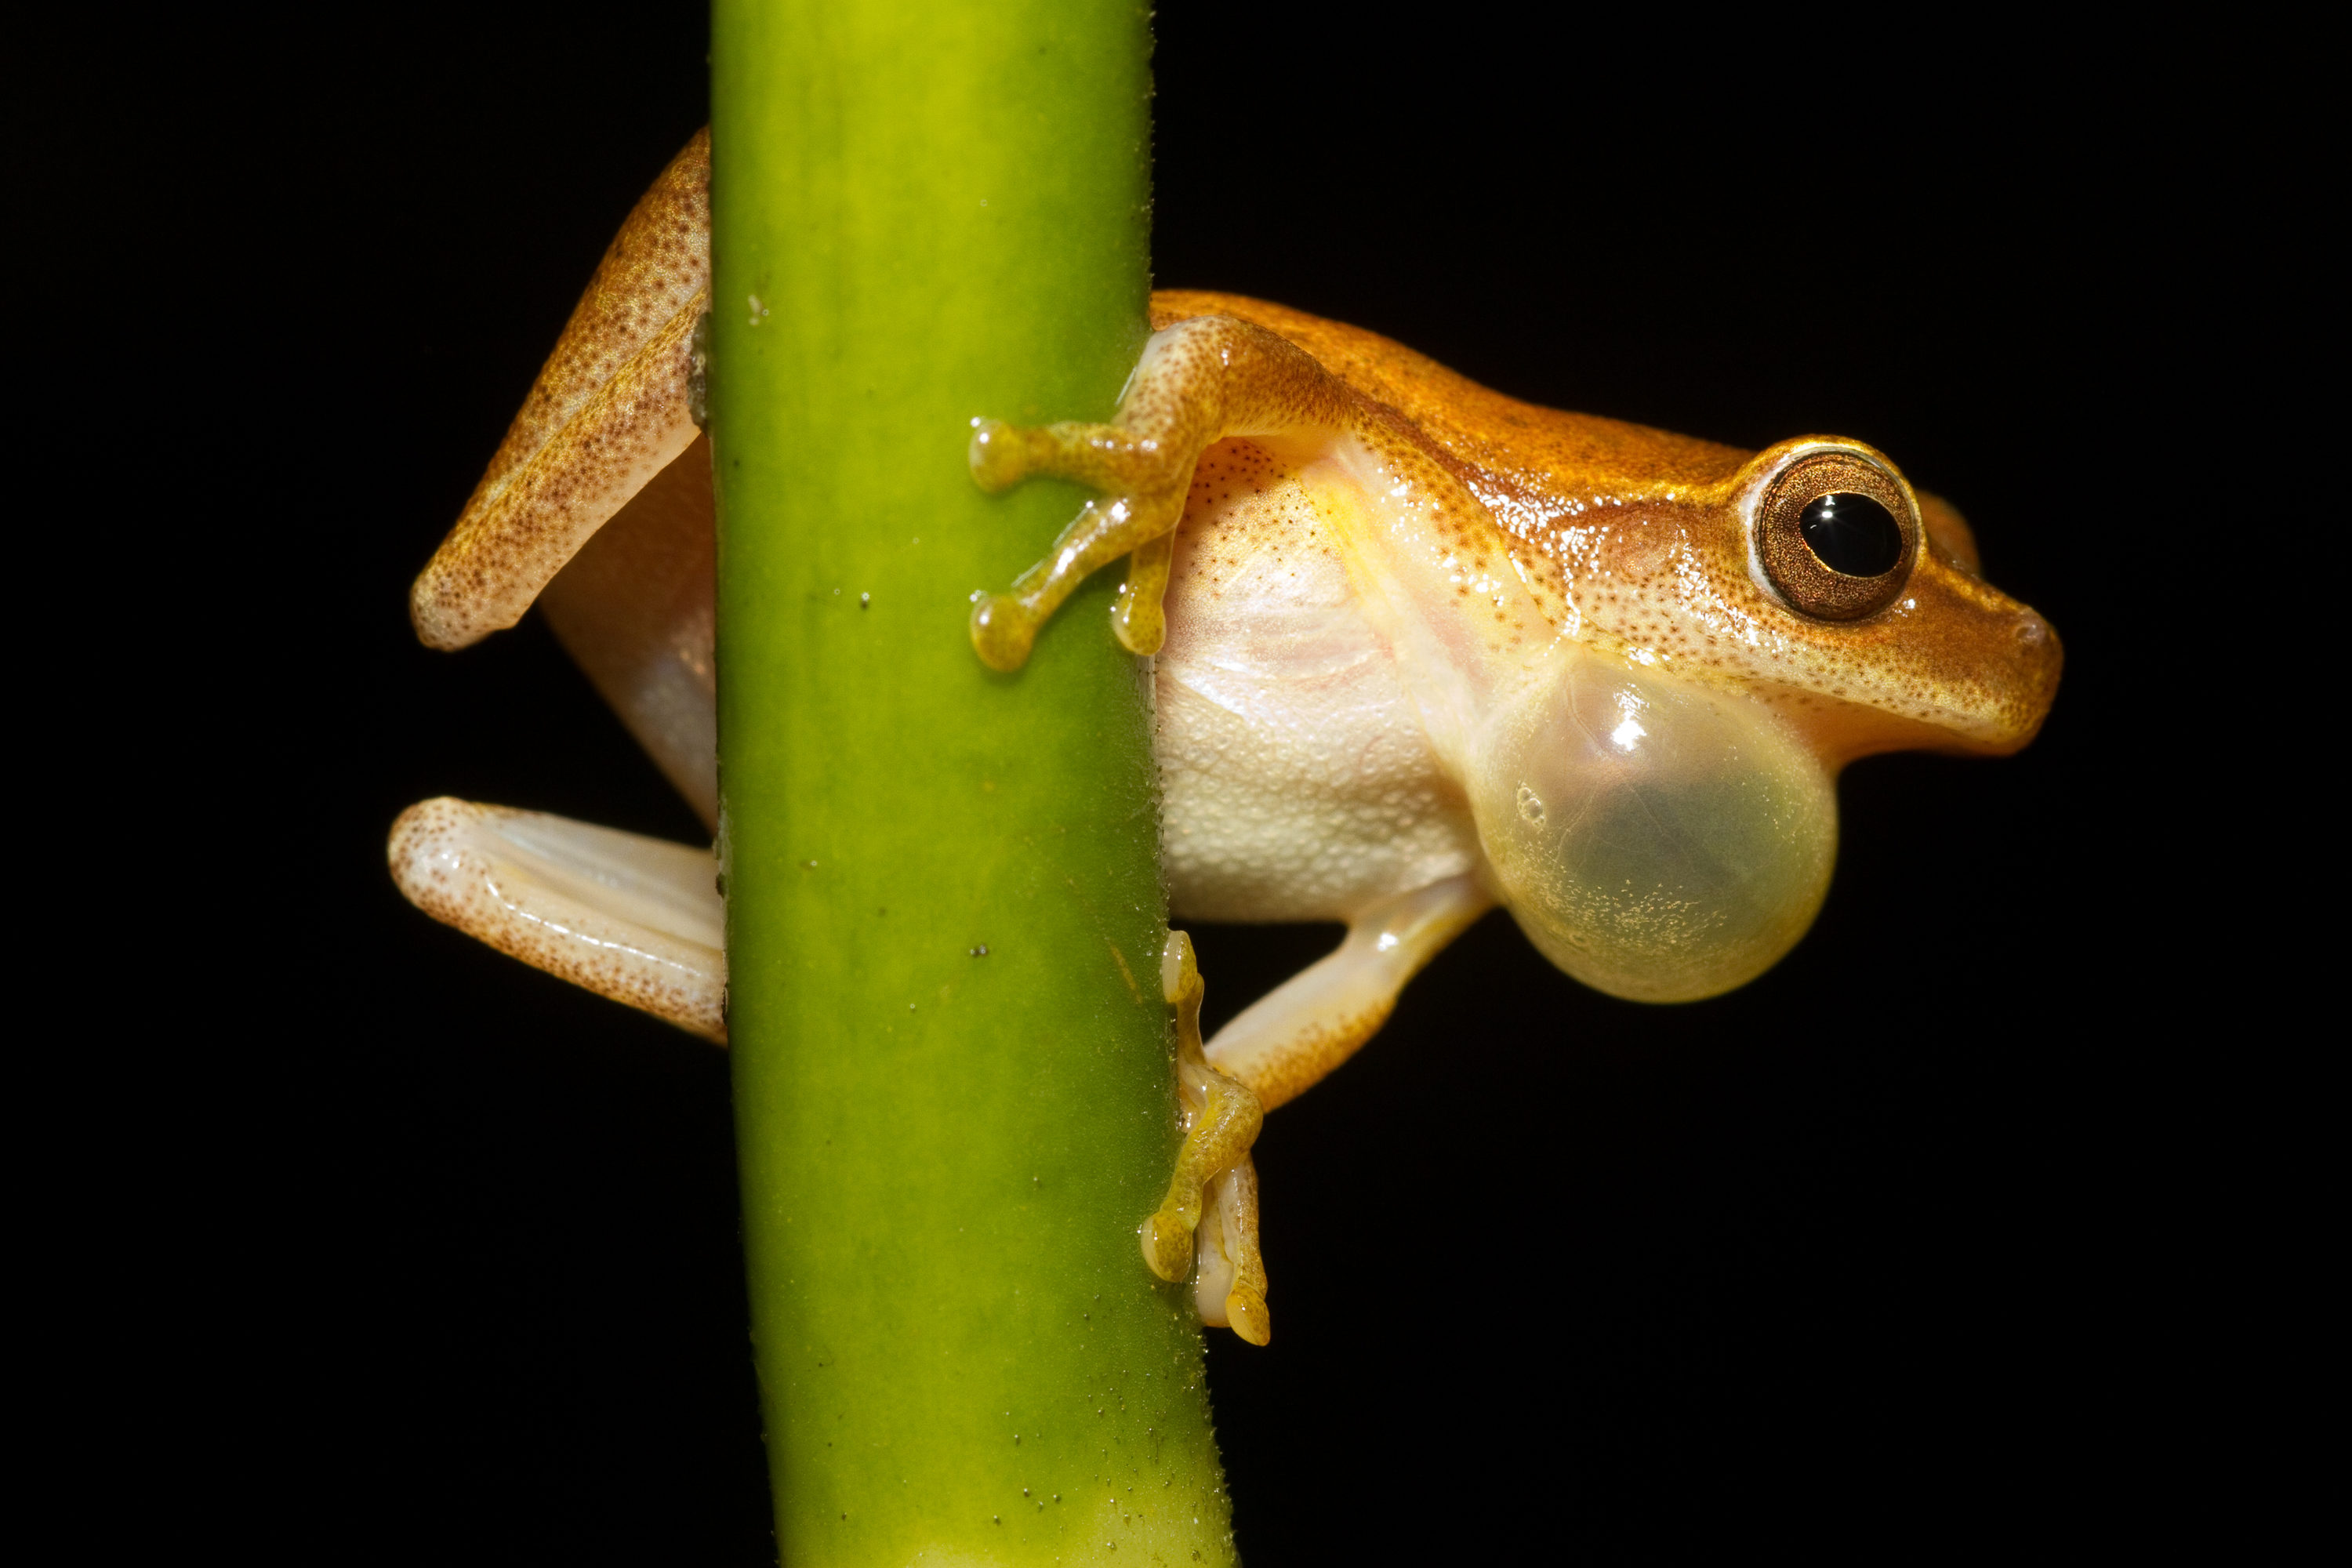 All about frogs and toads | Welcome Wildlife